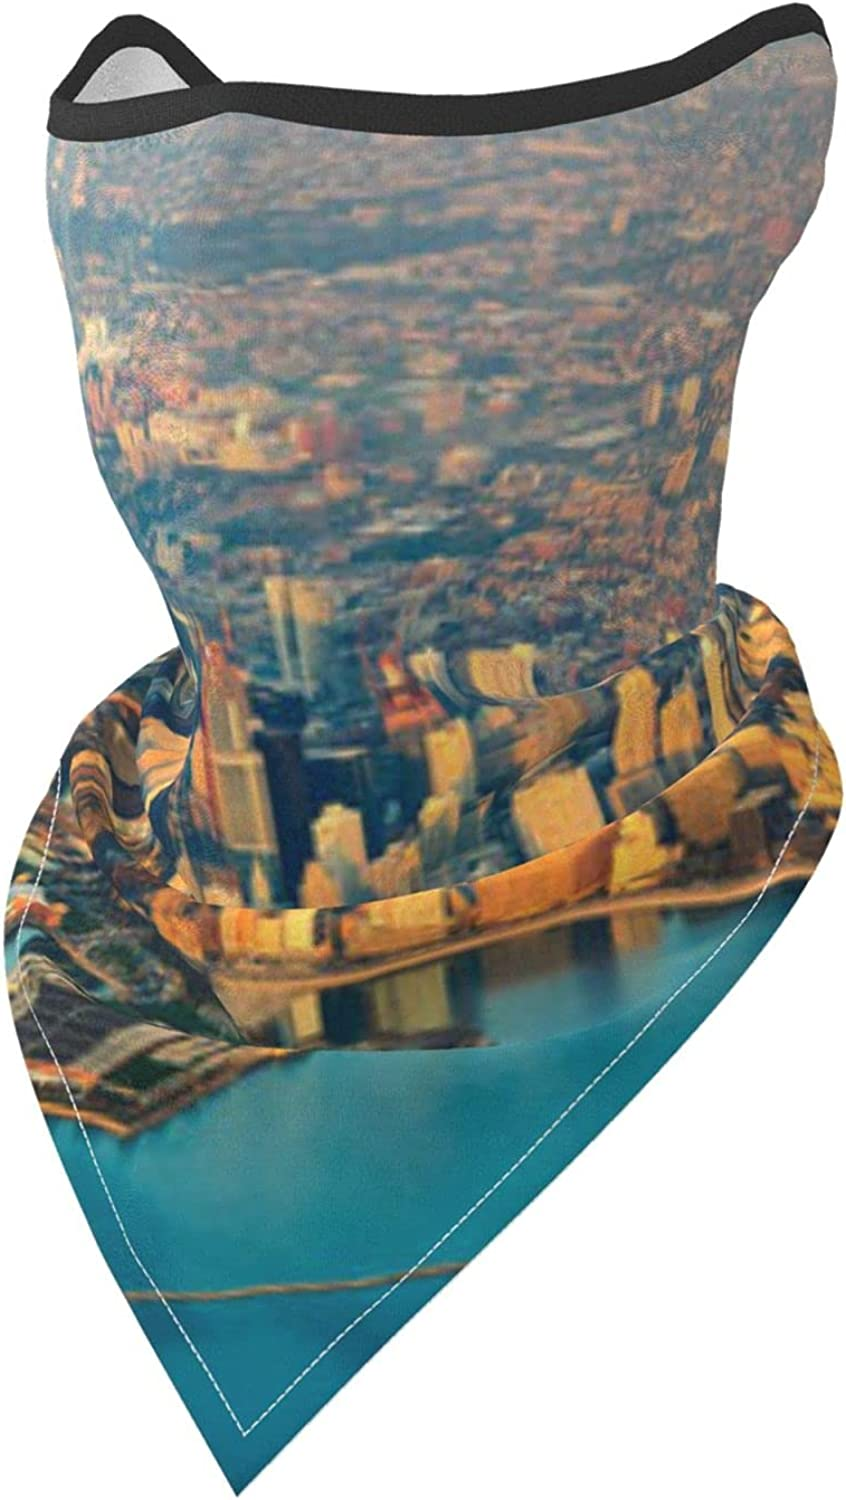 Chicago skyline Illinois Usa Pictures Prints Breathable Bandana Face Mask Neck Gaiter Windproof Sports Mask Scarf Headwear for Men Women Outdoor Hiking Cycling Running Motorcycling